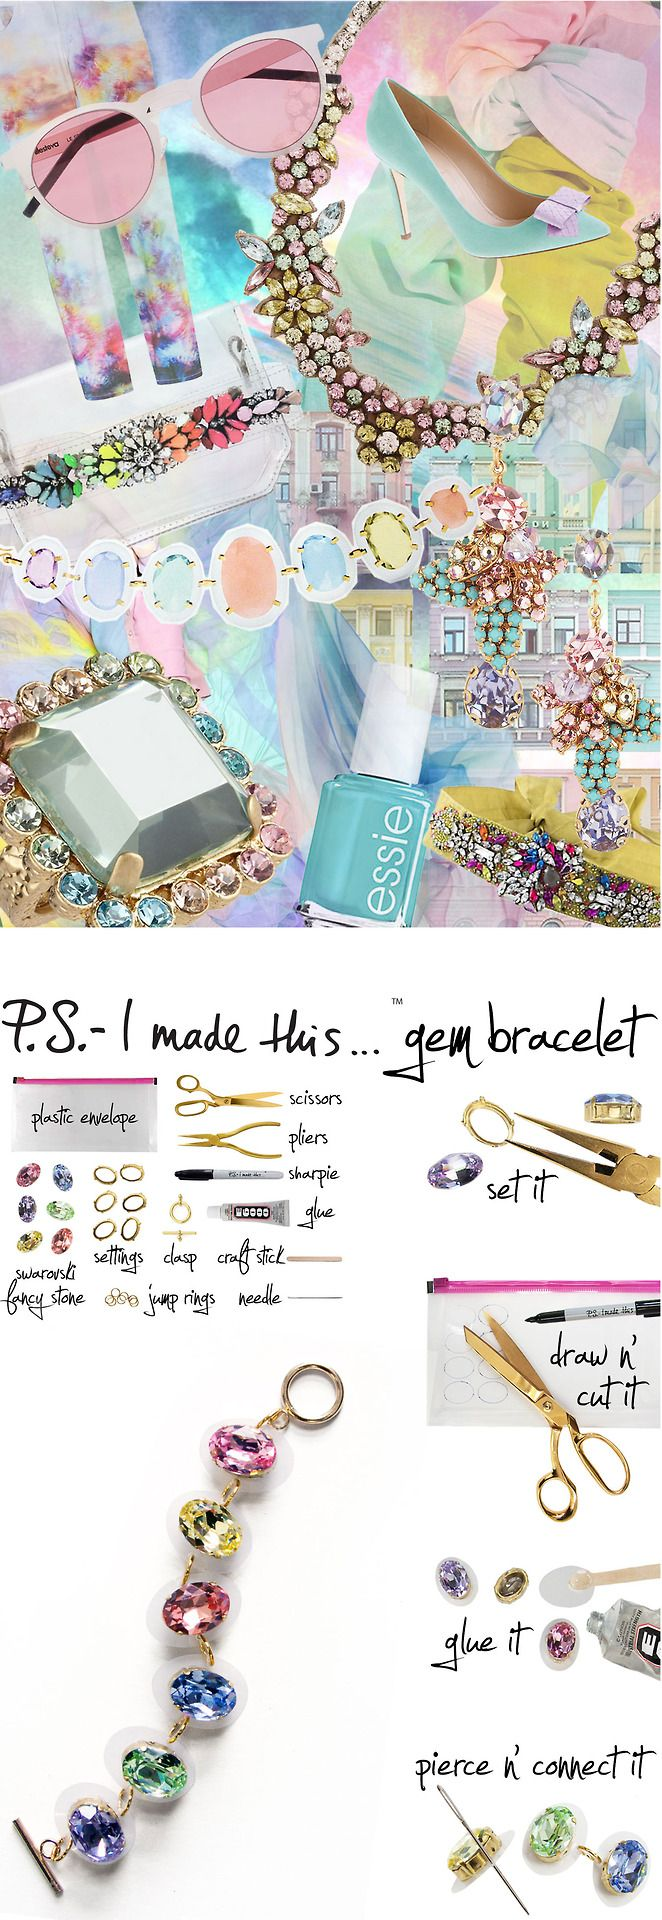 Sometimes you just need to have a girly moment. With Spring air flowing and flowers in bloom, it's the perfect time to trade tough z...